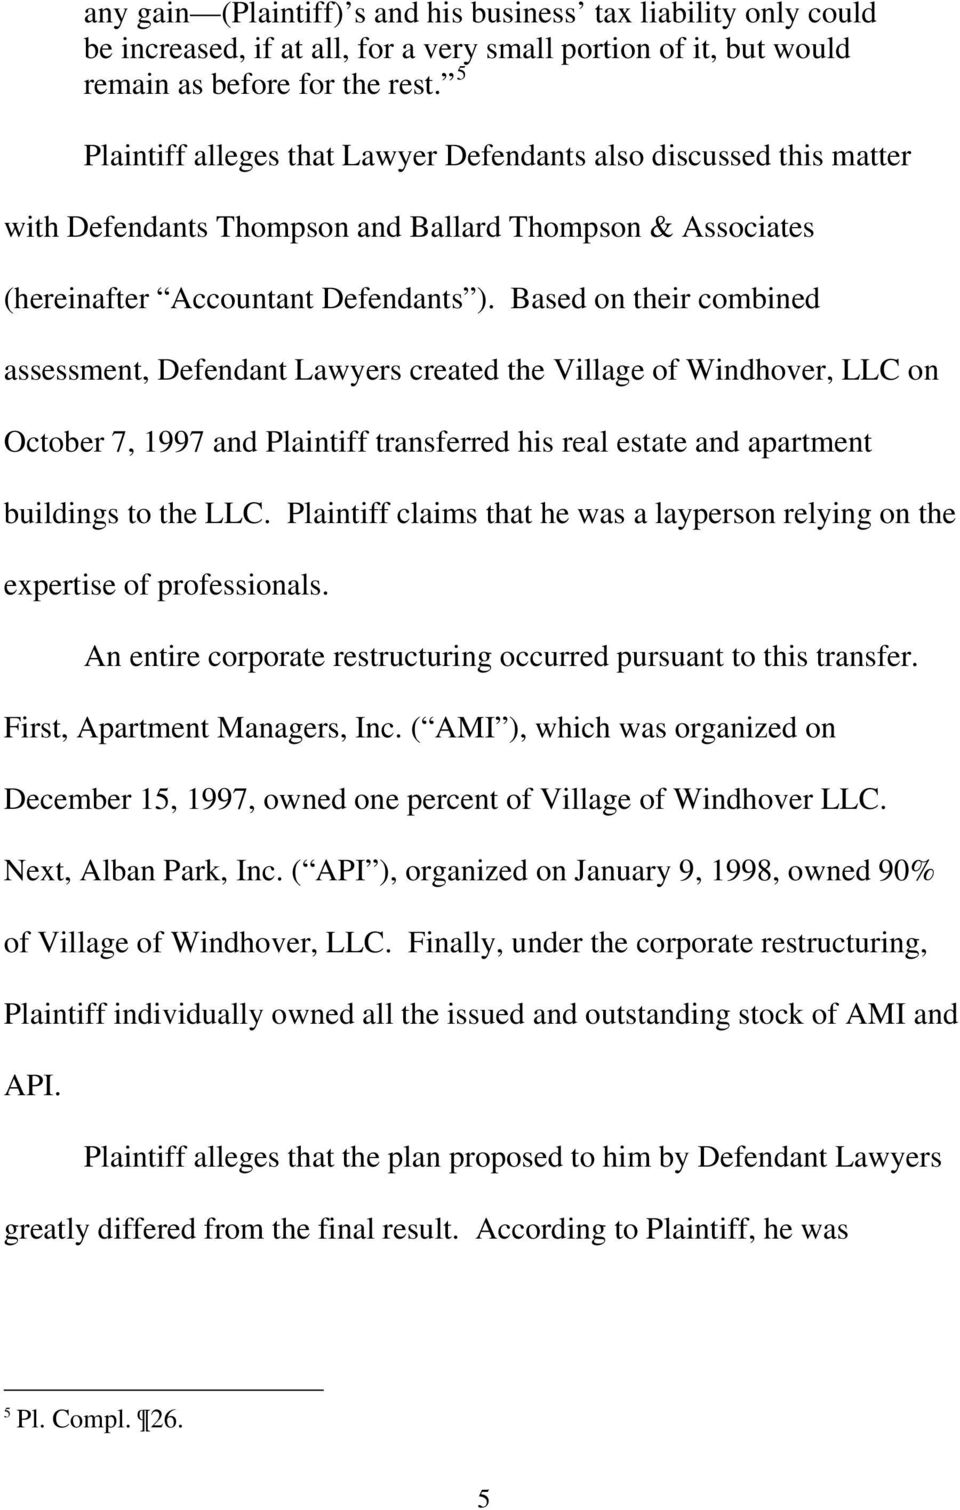 Based on their combined assessment, Defendant Lawyers created the Village of Windhover, LLC on October 7, 1997 and Plaintiff transferred his real estate and apartment buildings to the LLC.